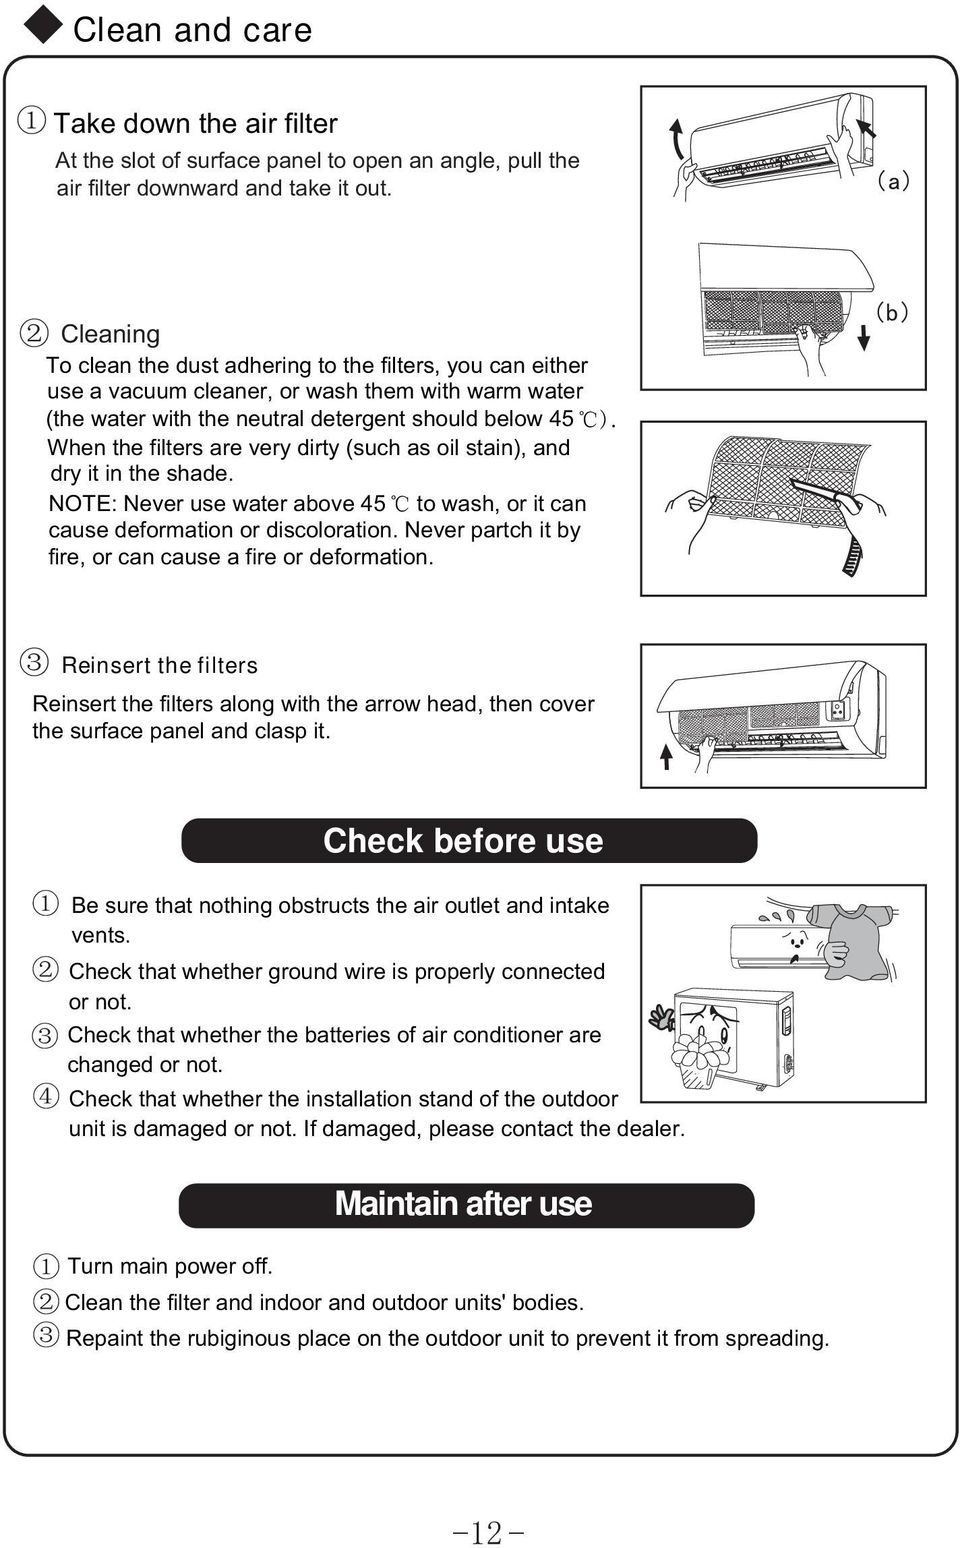 Heat Pump Split Air Conditioner Pdf Soleus Wiring Diagram Dirty Such As Oil Stain And Dry It In The Shade Note